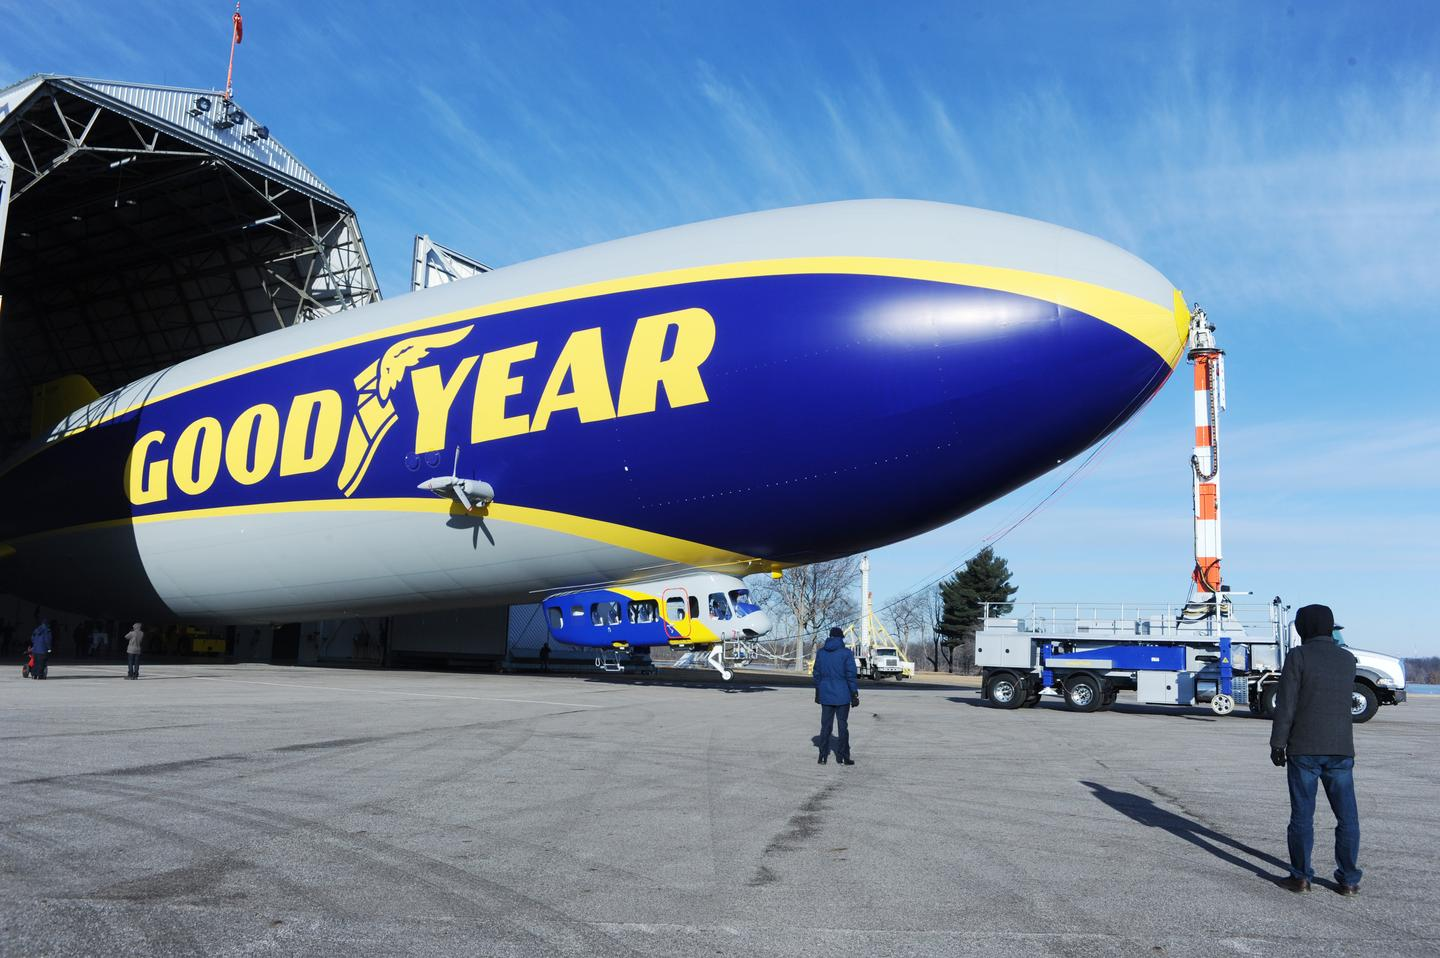 Goodyear's new airship will enter service this northern summer